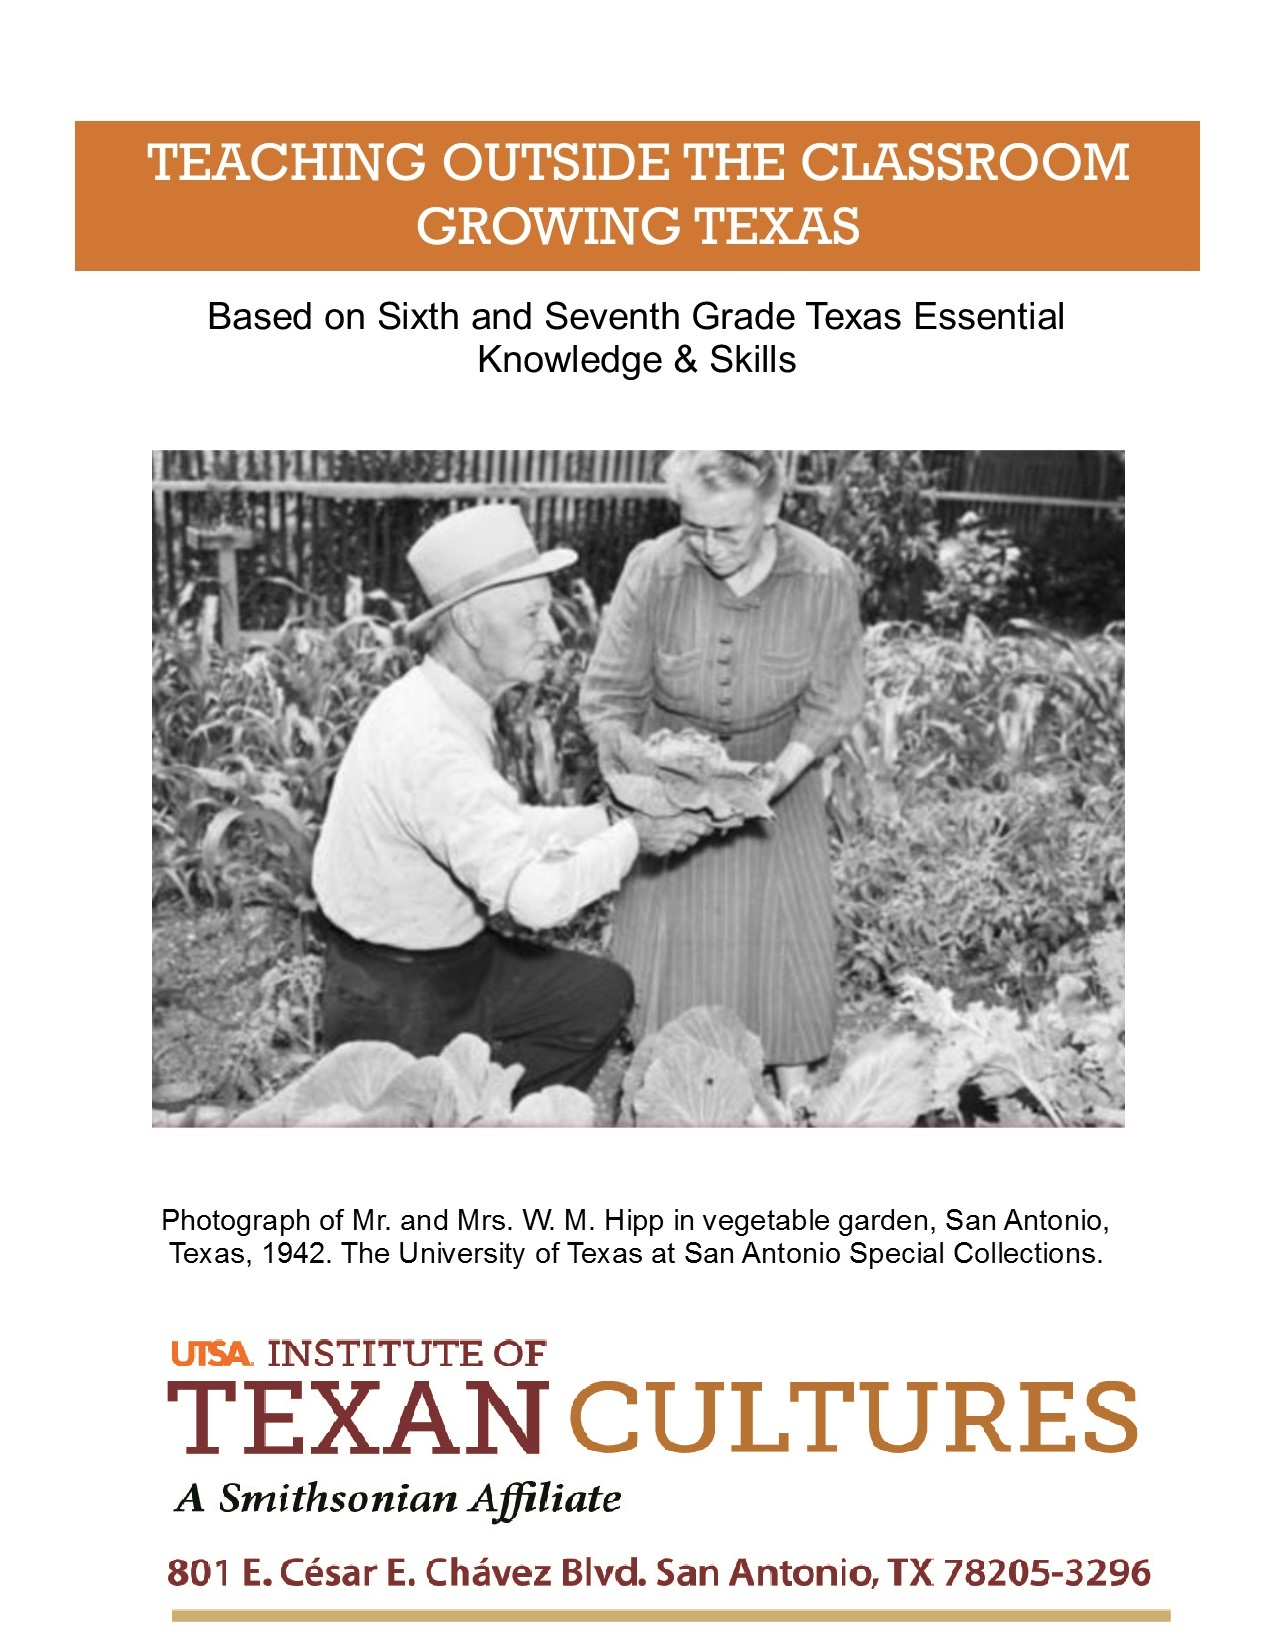 Teaching Outside the Classroom: Growing Texas  | UTSA Institute Of Texan Cultures